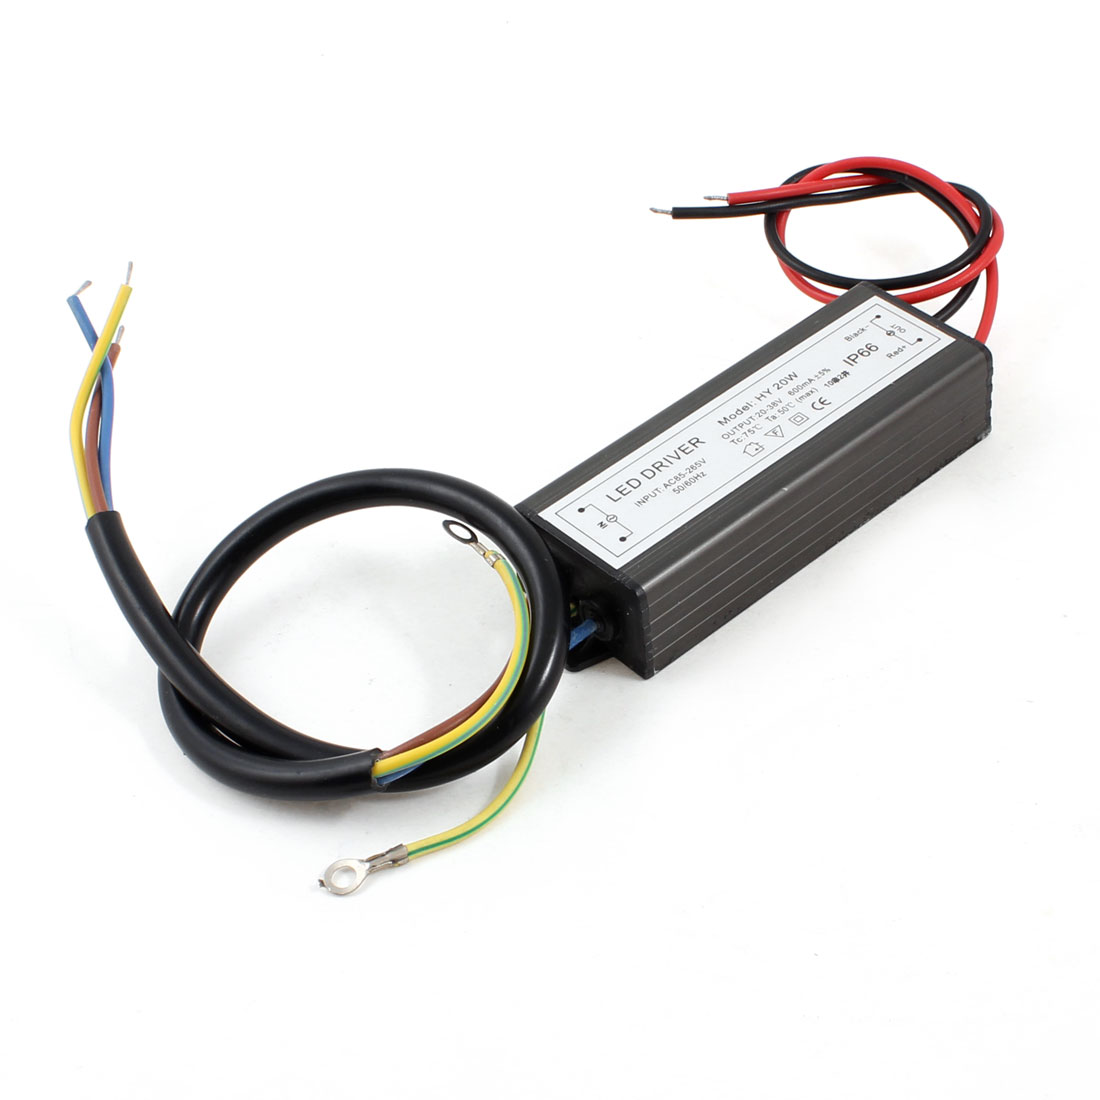 HY20W Model 10-Series 2-Parallel AC 85-265V Input 20-38V 600mA Output LED Driver